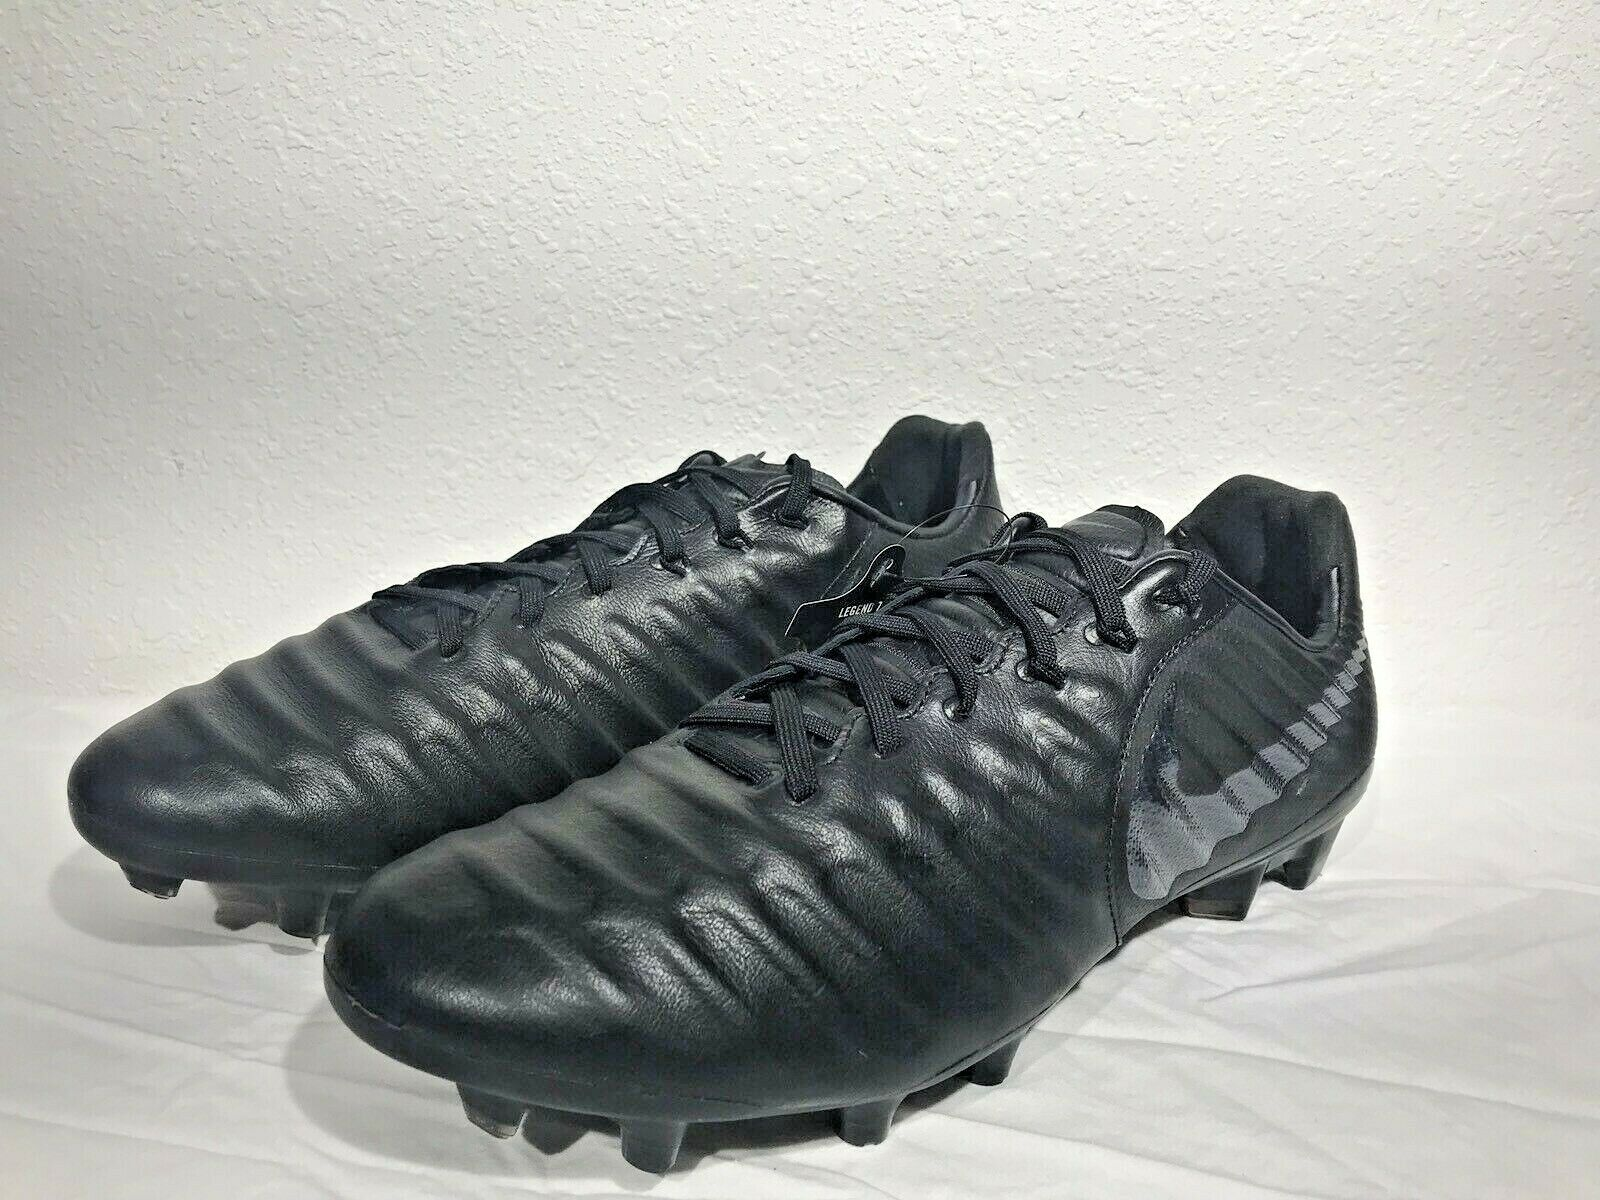 2571f5d1f Nike Tiempo Legend 7 Soccer Cleats Firm Ground Pro FG Black Ah7241 ...